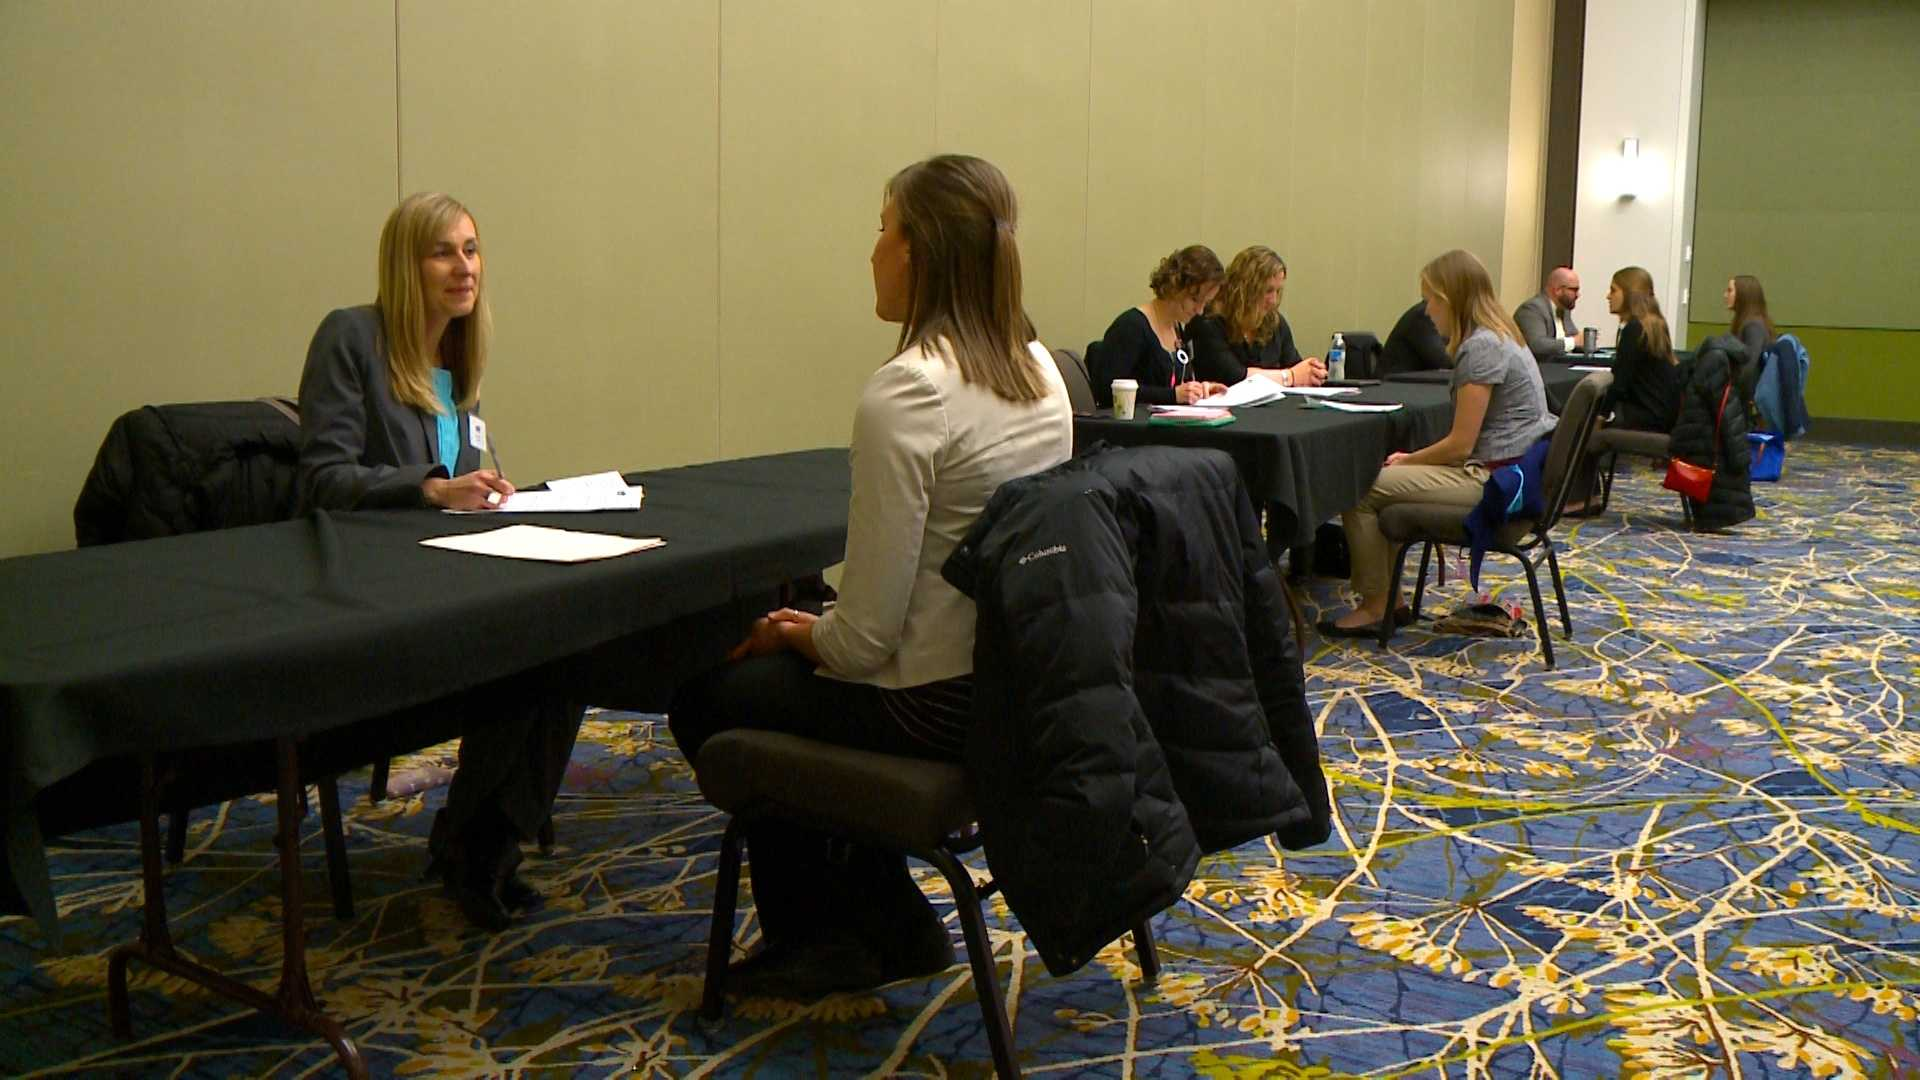 Nearly 700 people went to the Educator Career Fair Saturday morning hoping to land a job with the Des Moines Public School District.